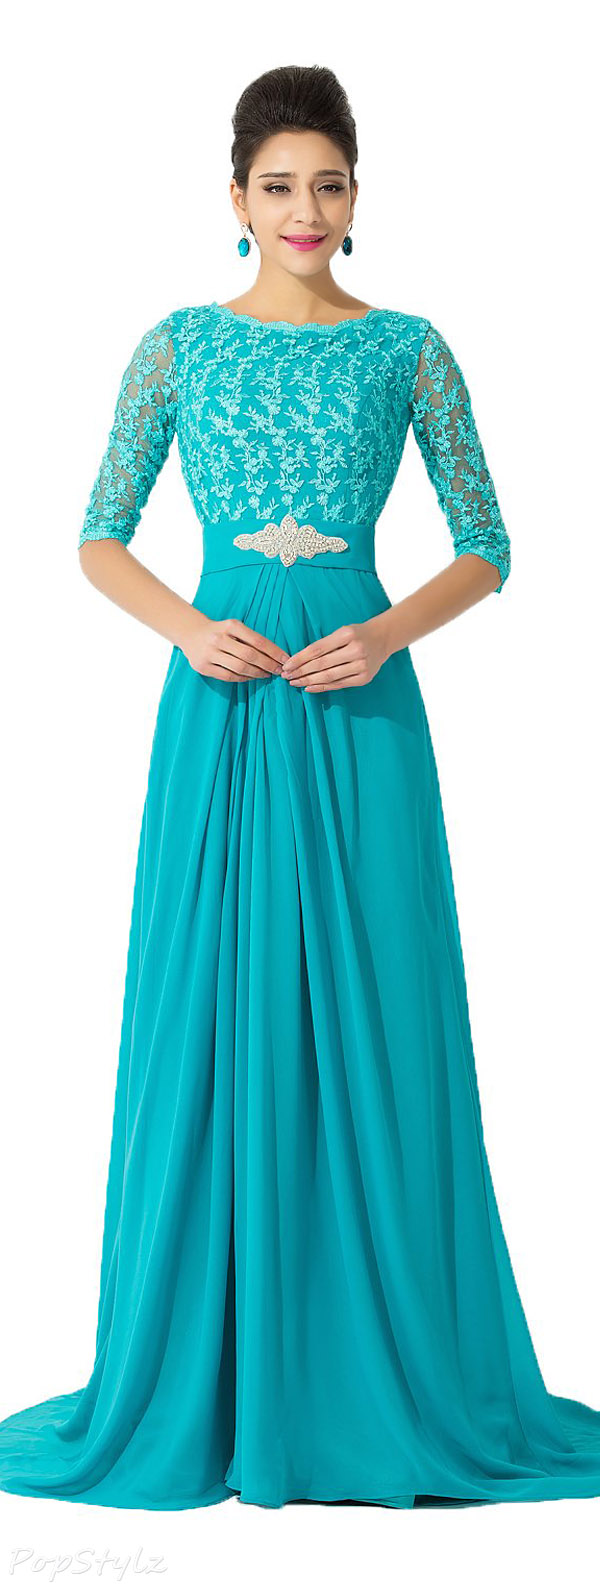 Sunvary Chiffon Half Sleeves Long Formal Dress